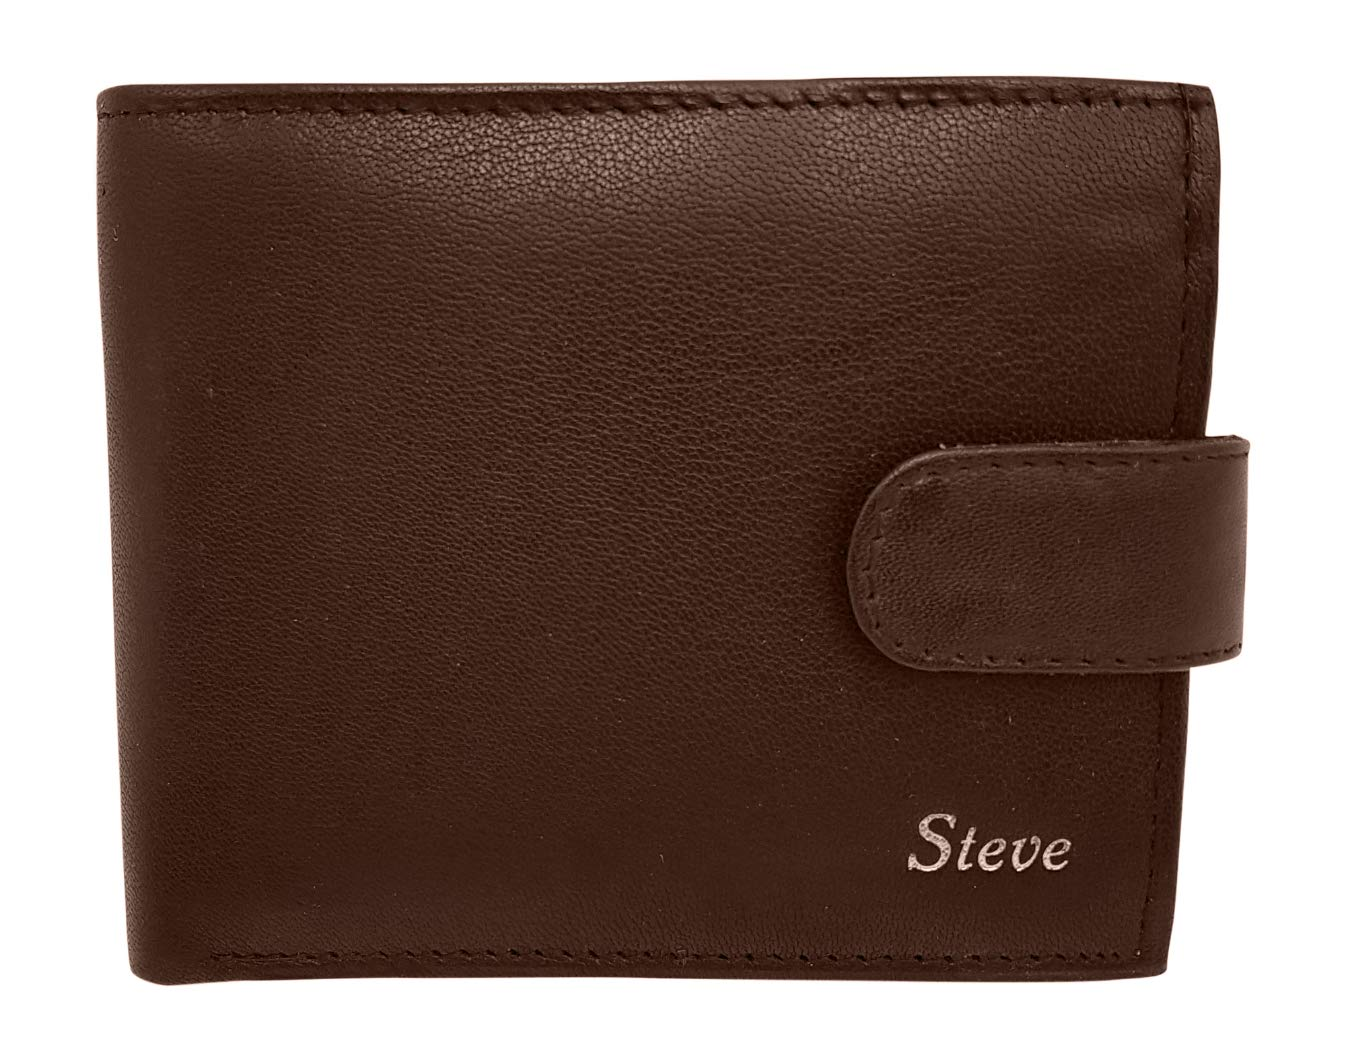 Personalised RFID Blocking Mens Designer Wallet - Black - Genuine Leather - Keep Your Money Safe - Large Coin Zipped Coin Pocket with Gift Box